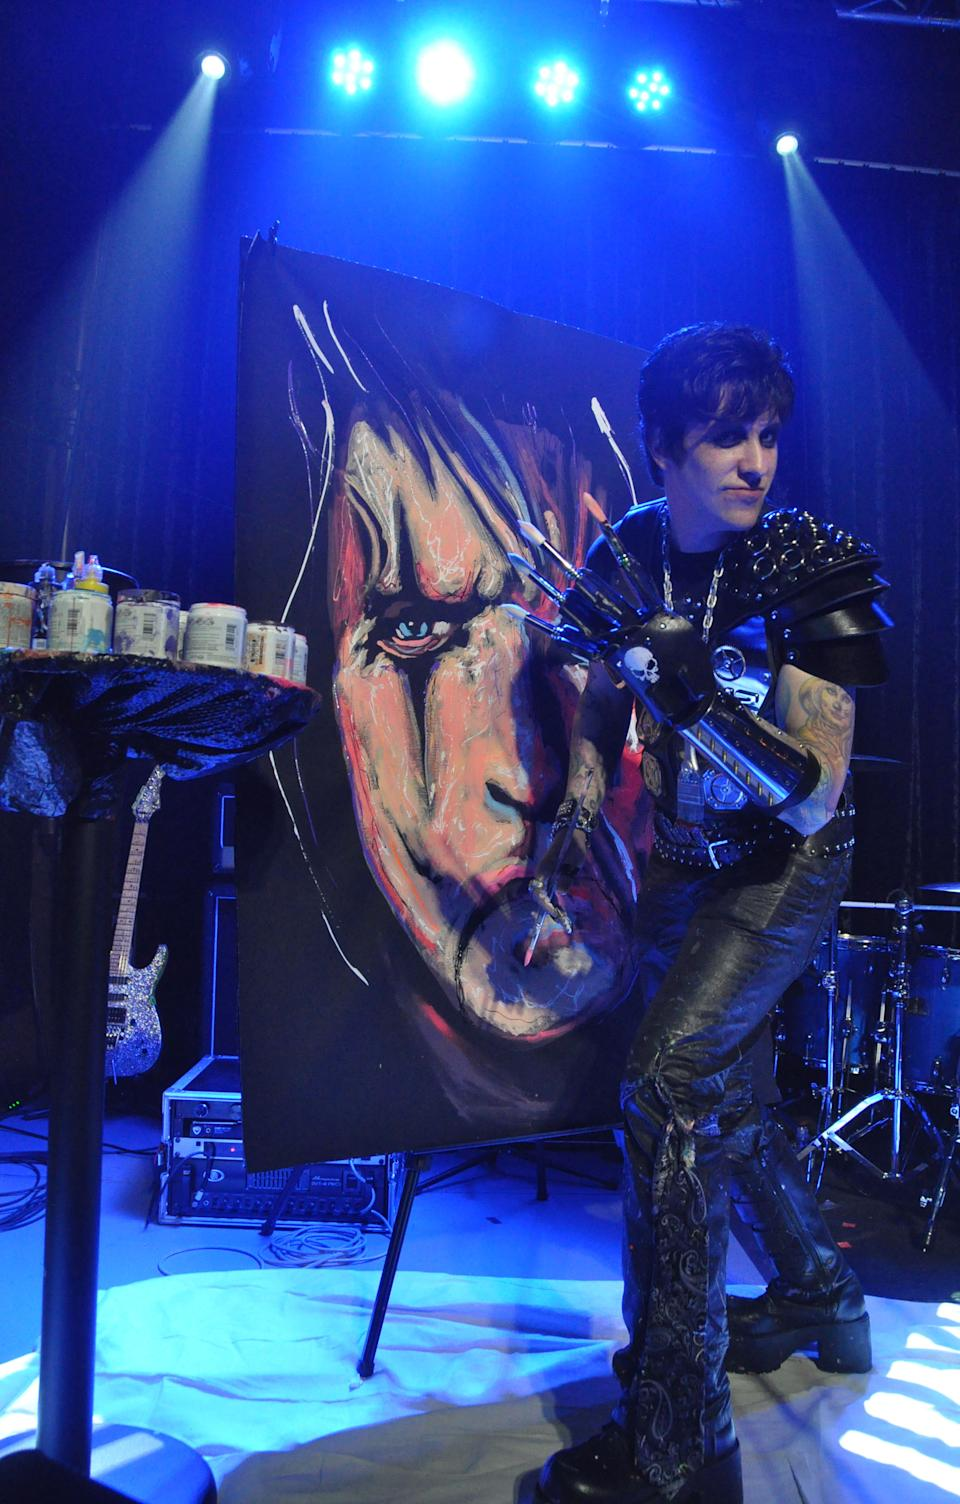 Speed painter Rock Demarco crafts a giant portrait of Alice Cooper ahead of an all-star concert benefiting the Brennan Rock & Roll Academy, Thursday, March 28, 2013, in Sioux Falls, S.D. (AP Photo/Dirk Lammers)